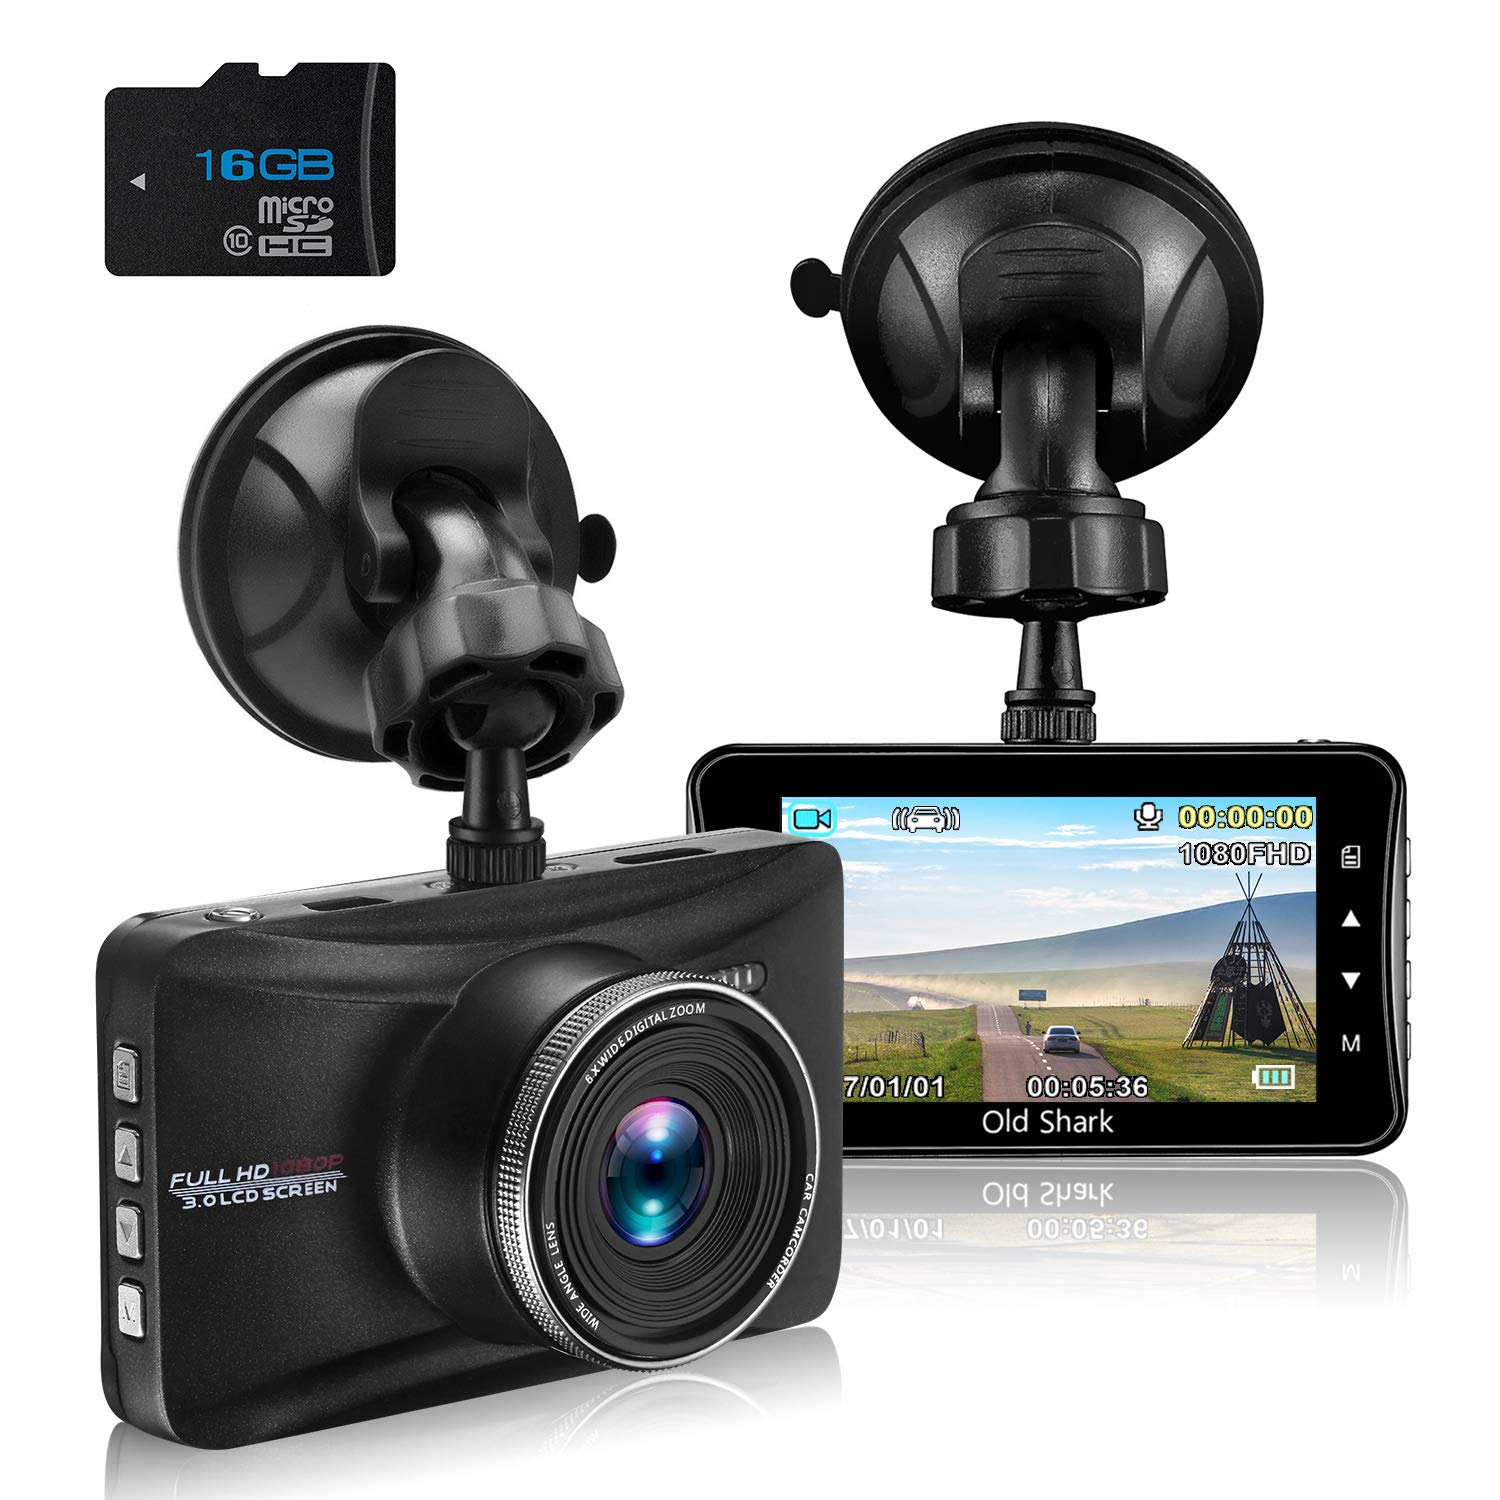 OldShark Dash Cam, 1080P HD Car Driving Video Recorder Built in G-Sensor, Night Vision 82JG-AAGN3-S52QE2